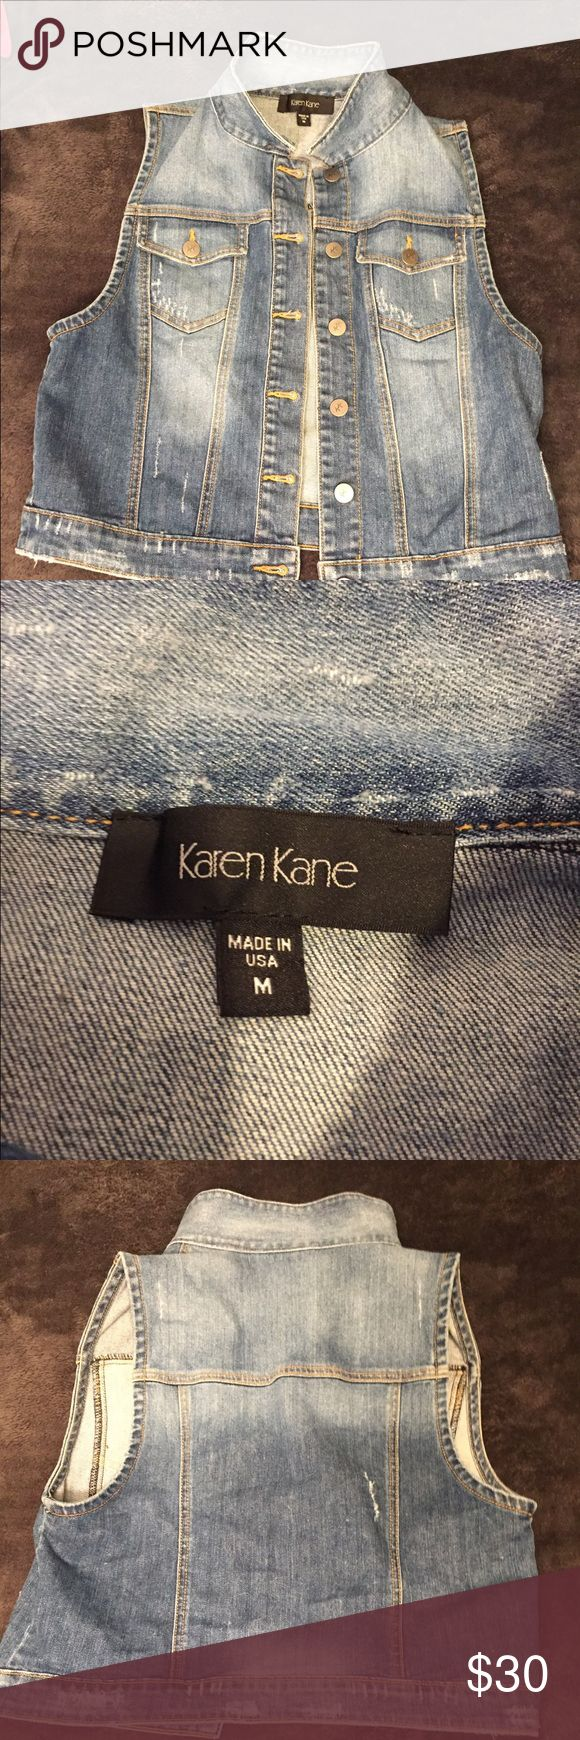 Karen Kane Jean Vest EUC, worn a few times. The first two photos are stock pics to show fit. Karen Kane Jackets & Coats Vests